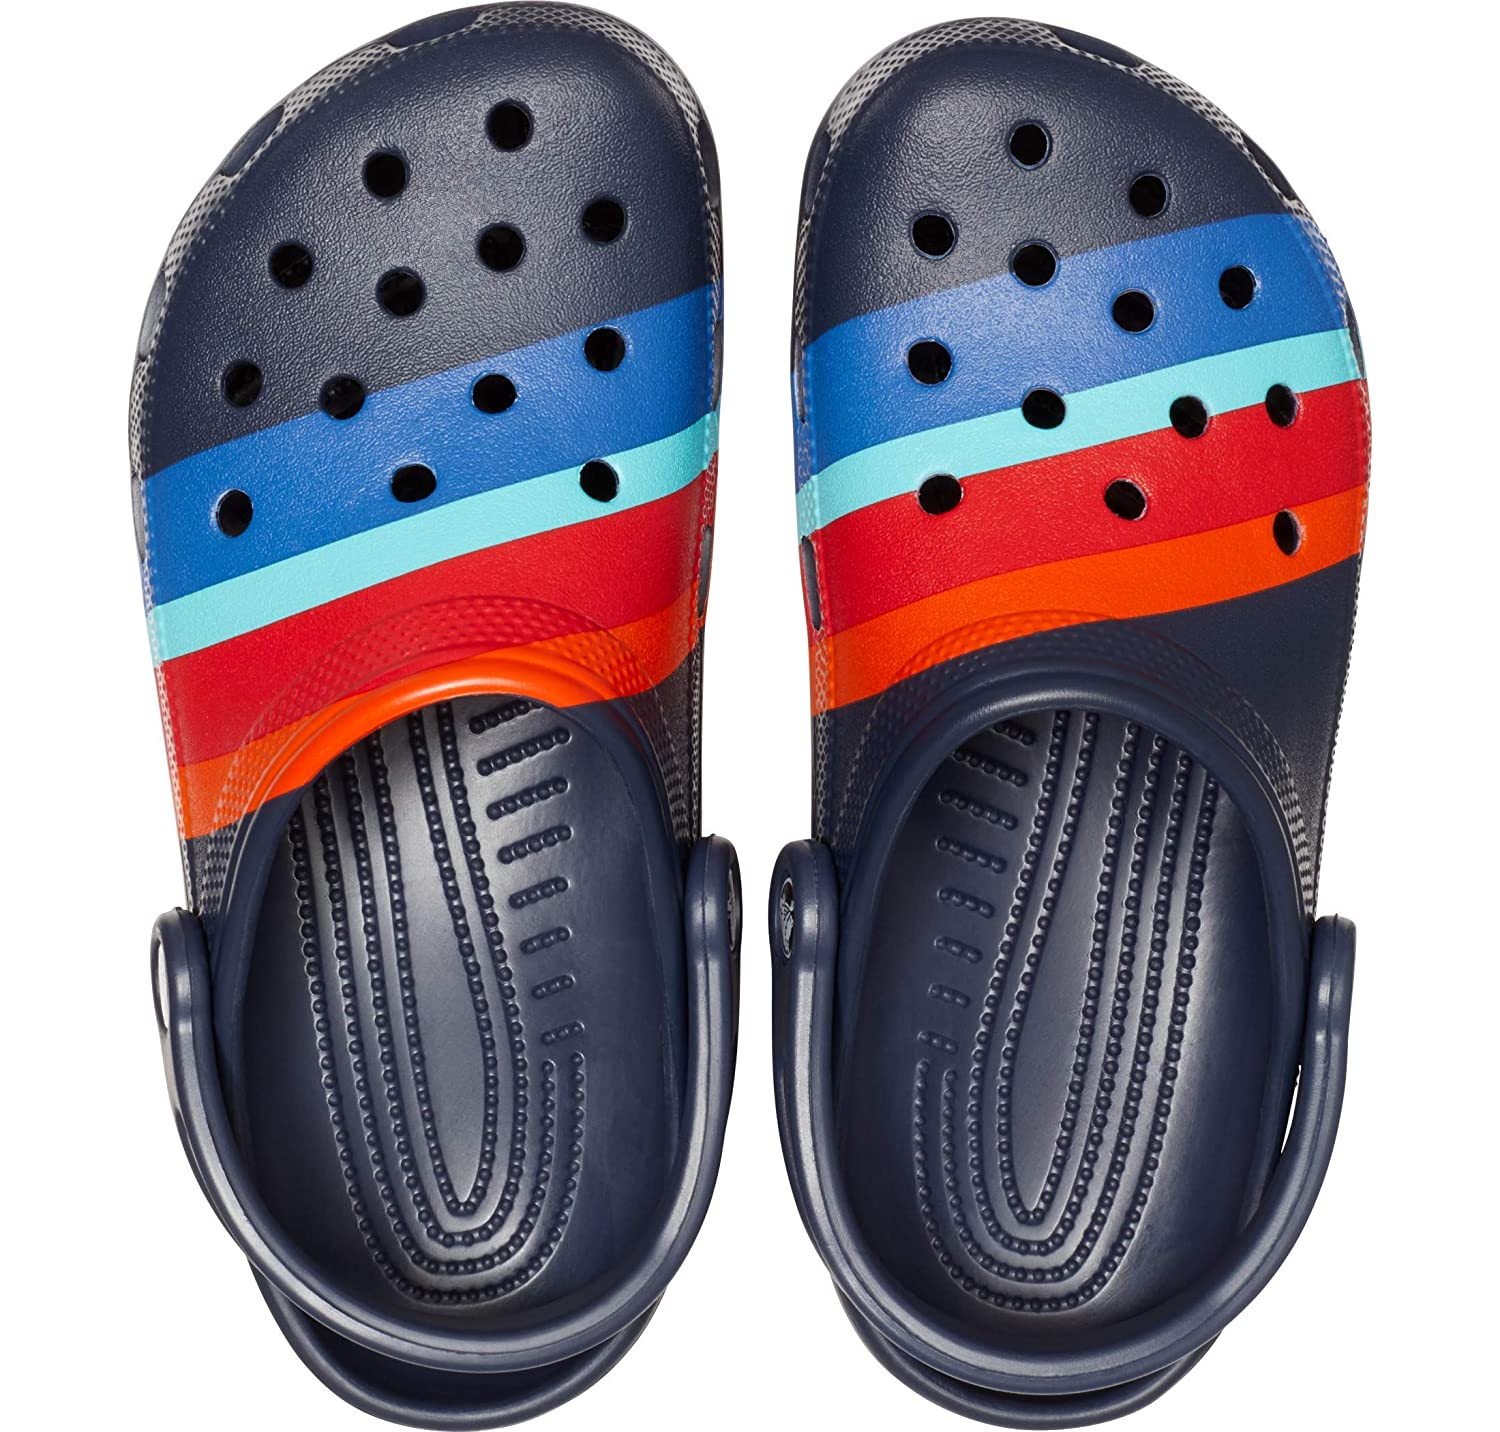 Comfort Slip On Casual Water Shoe Lightweight Crocs Mens and Womens Classic Graphic Clog